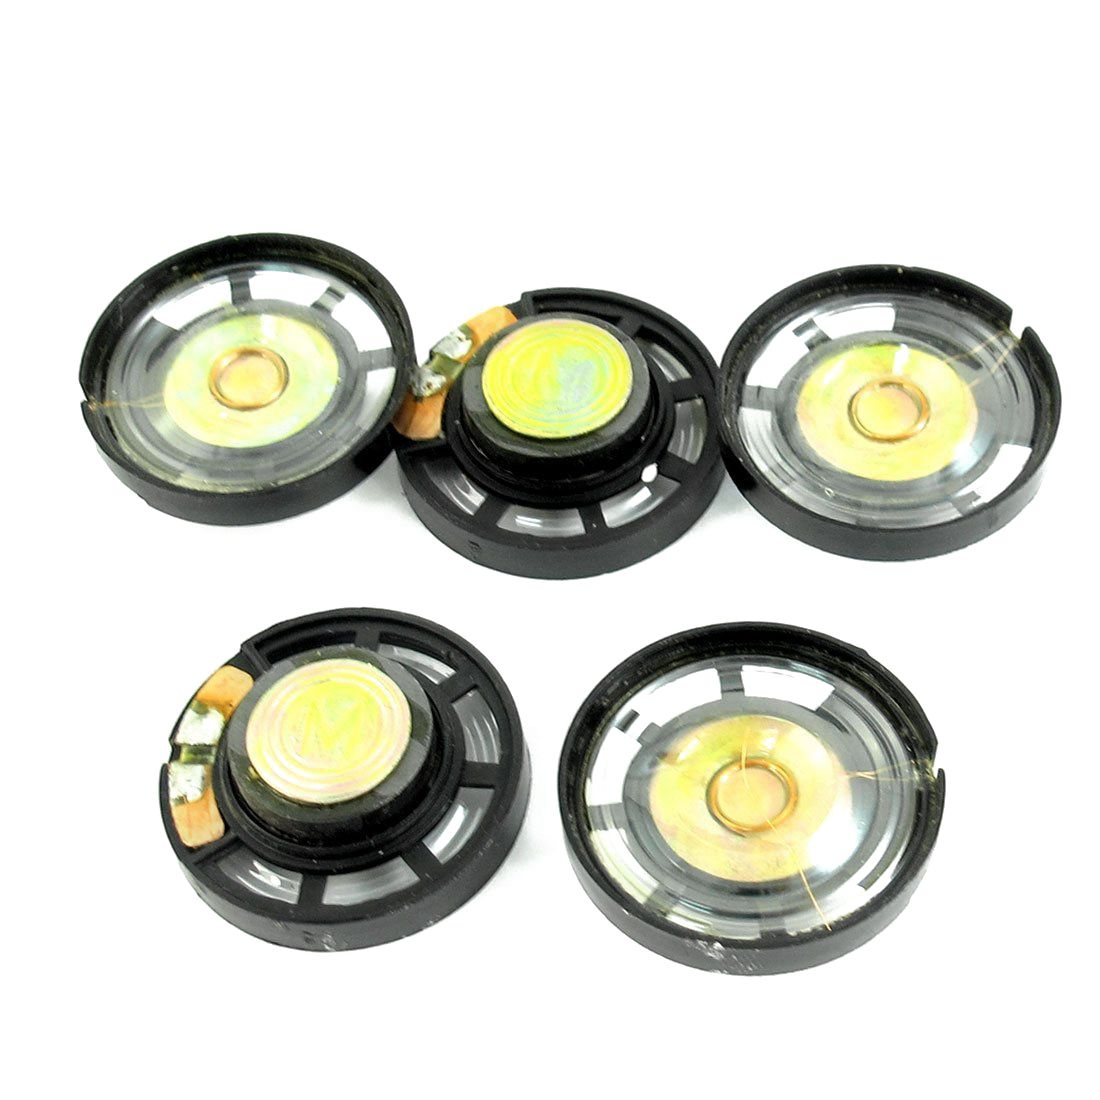 5 Pieces 8 Ohm 0.25 W 29 Mm Magnetic Closure Speaker For Electric Toy Possessing Chinese Flavors Portable Speakers